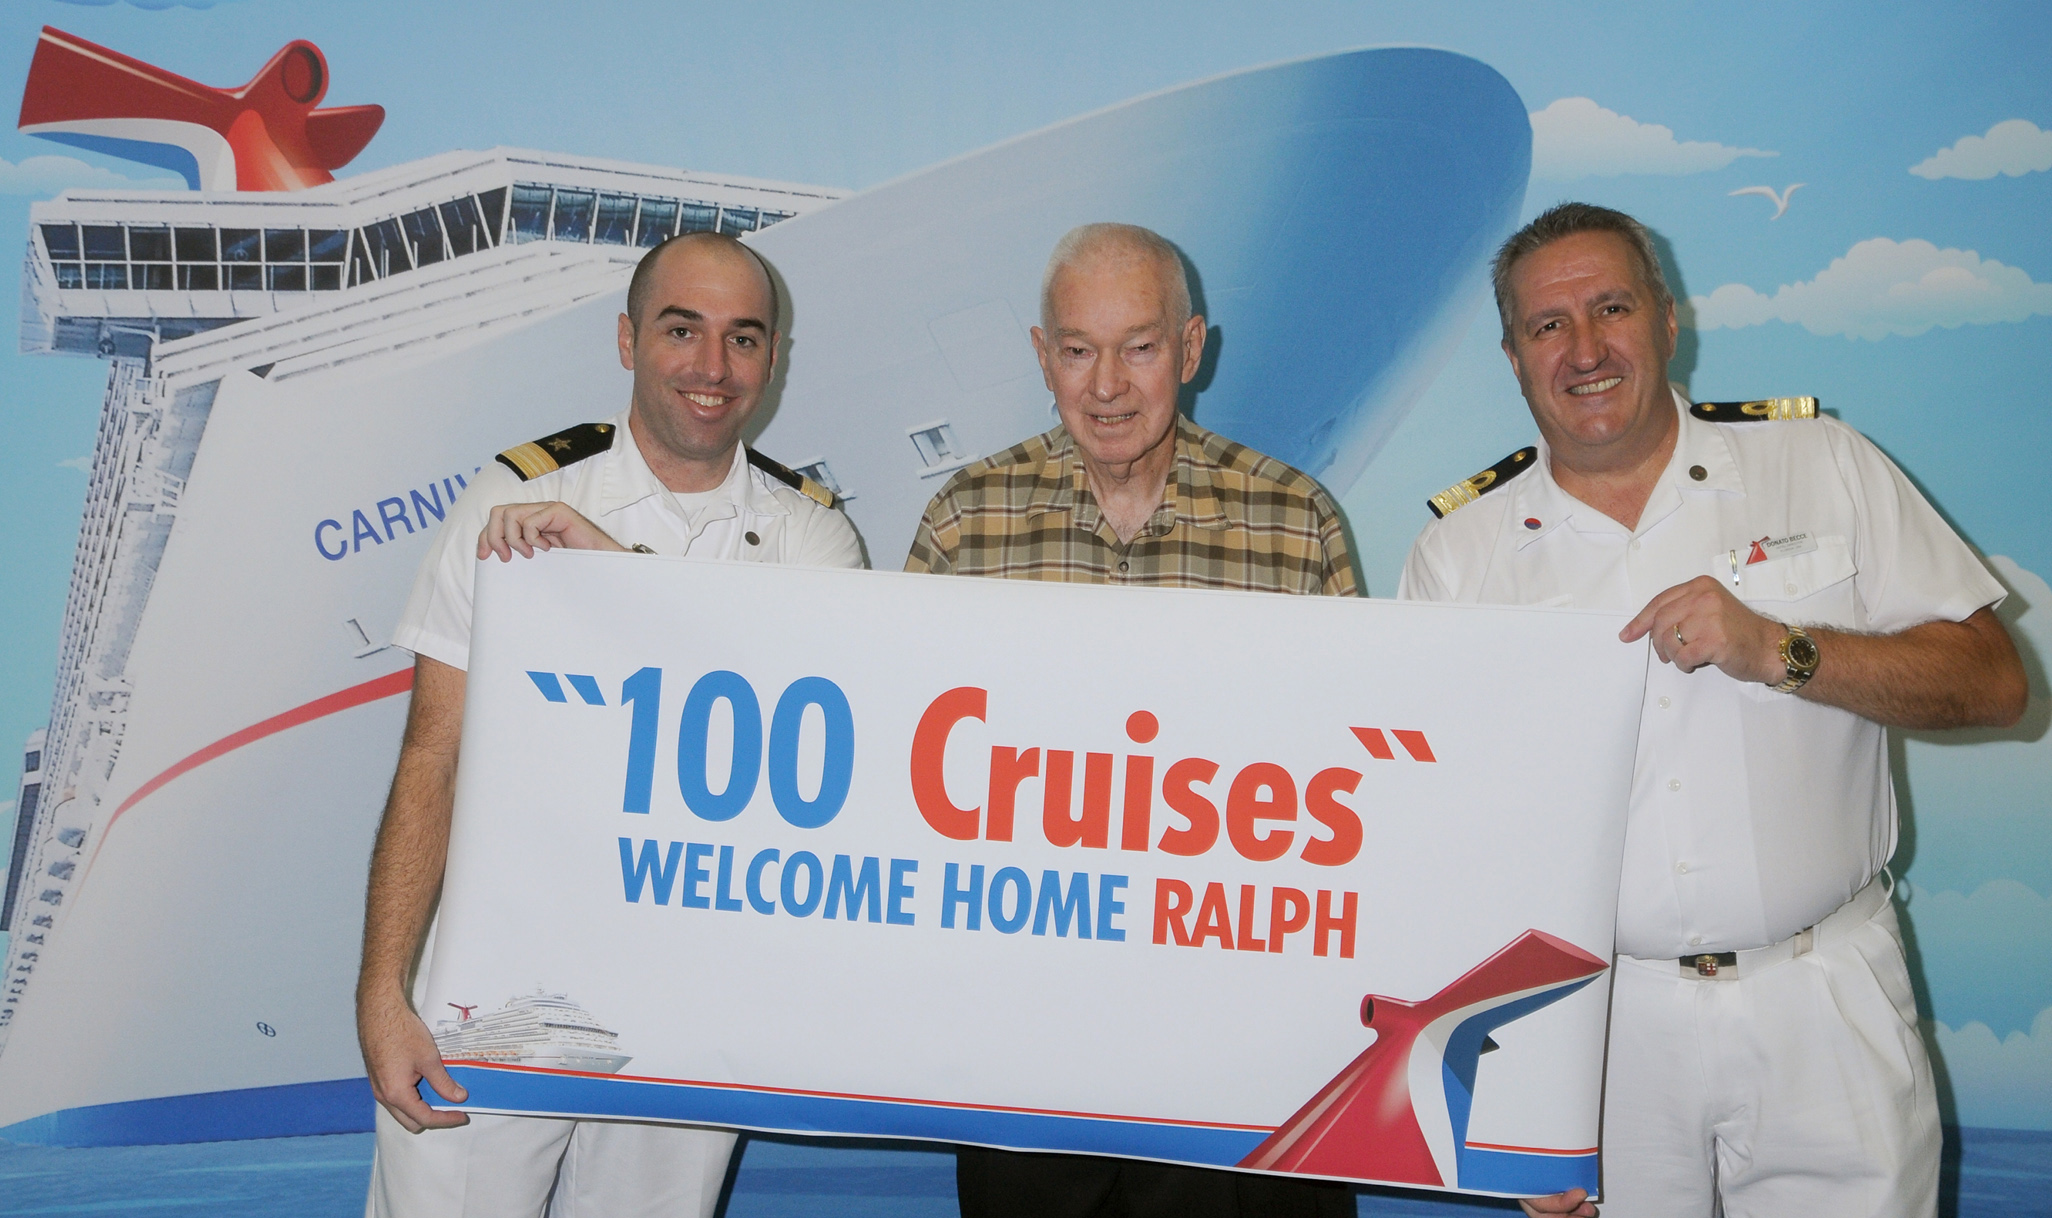 Longtime Cruiser Sails On 100th 'Fun Ship' Voyage On Carnival Dream